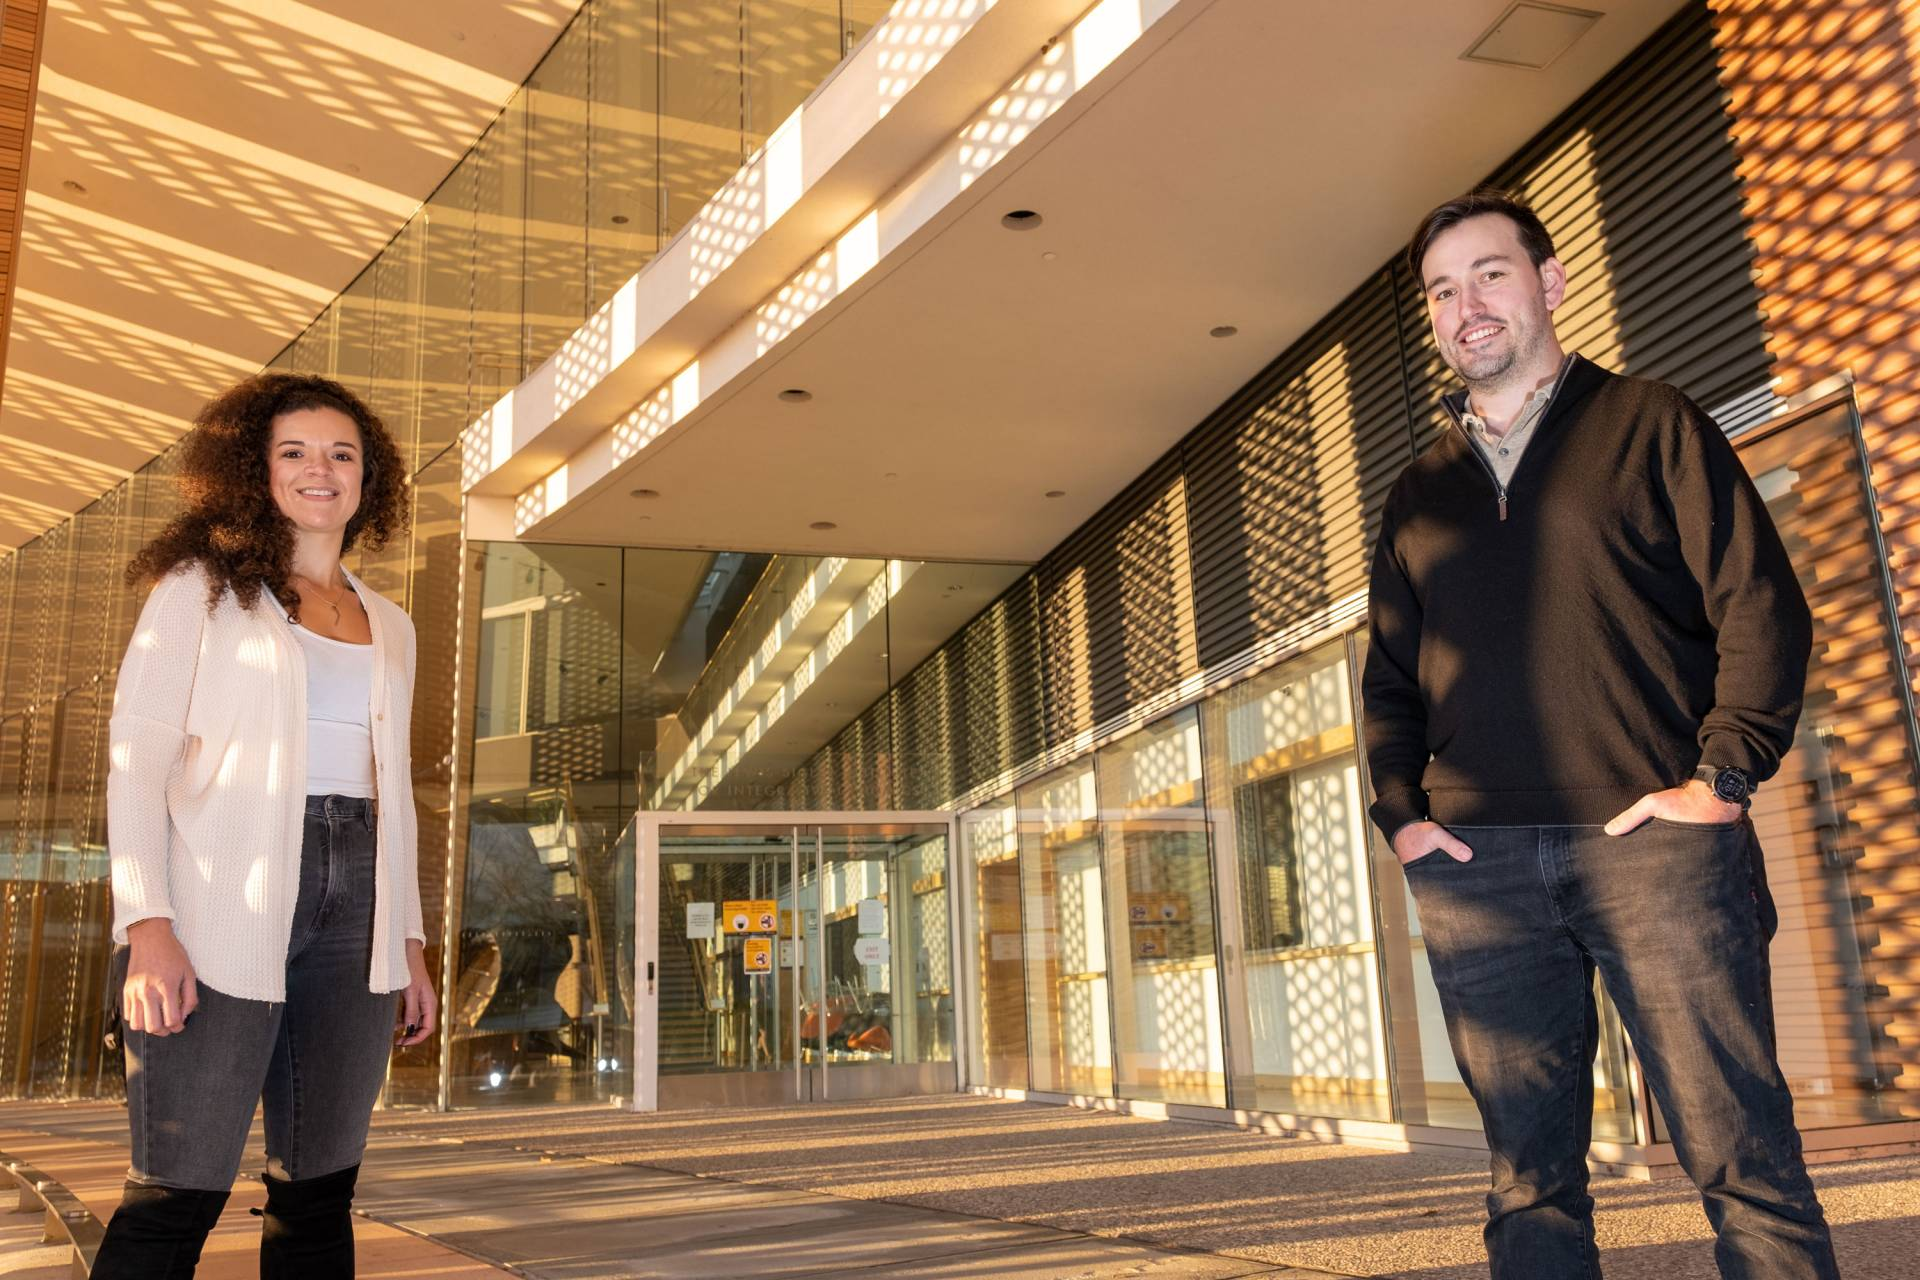 Alexis Cowan and Michael Neinast at the entrance of the Icahn building